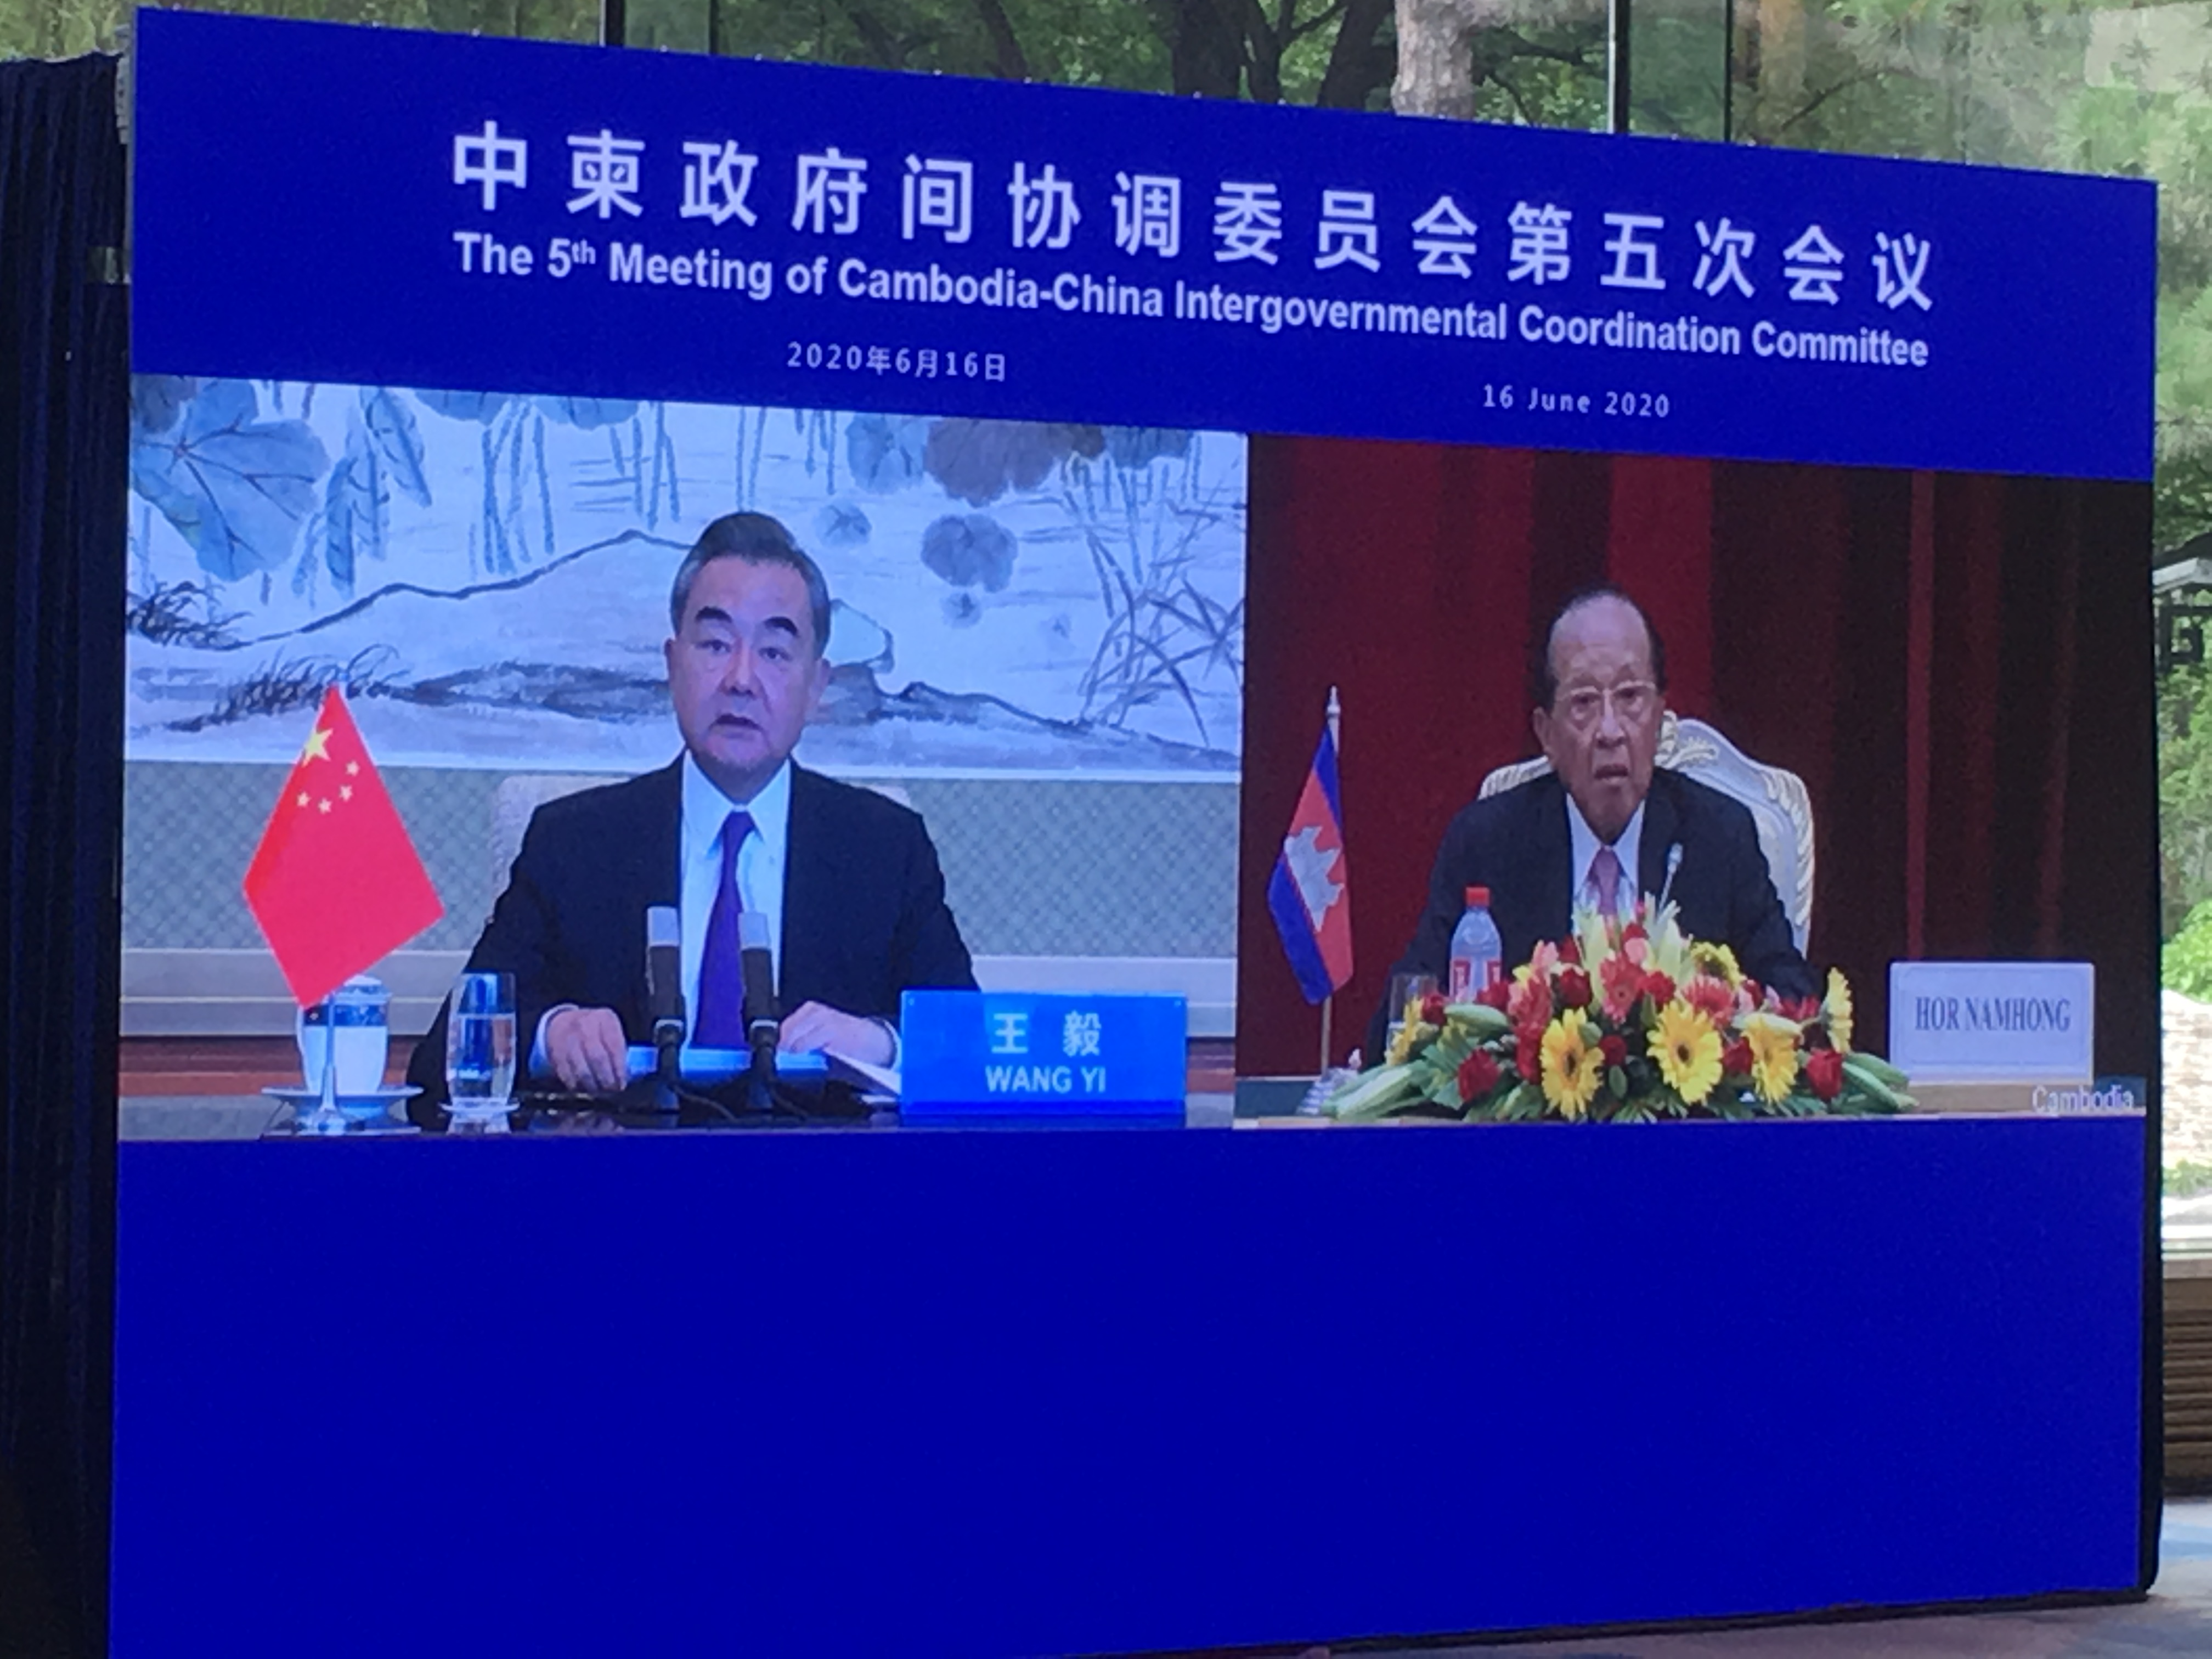 China, Cambodia look to deepen ties amid COVID-19 crisis